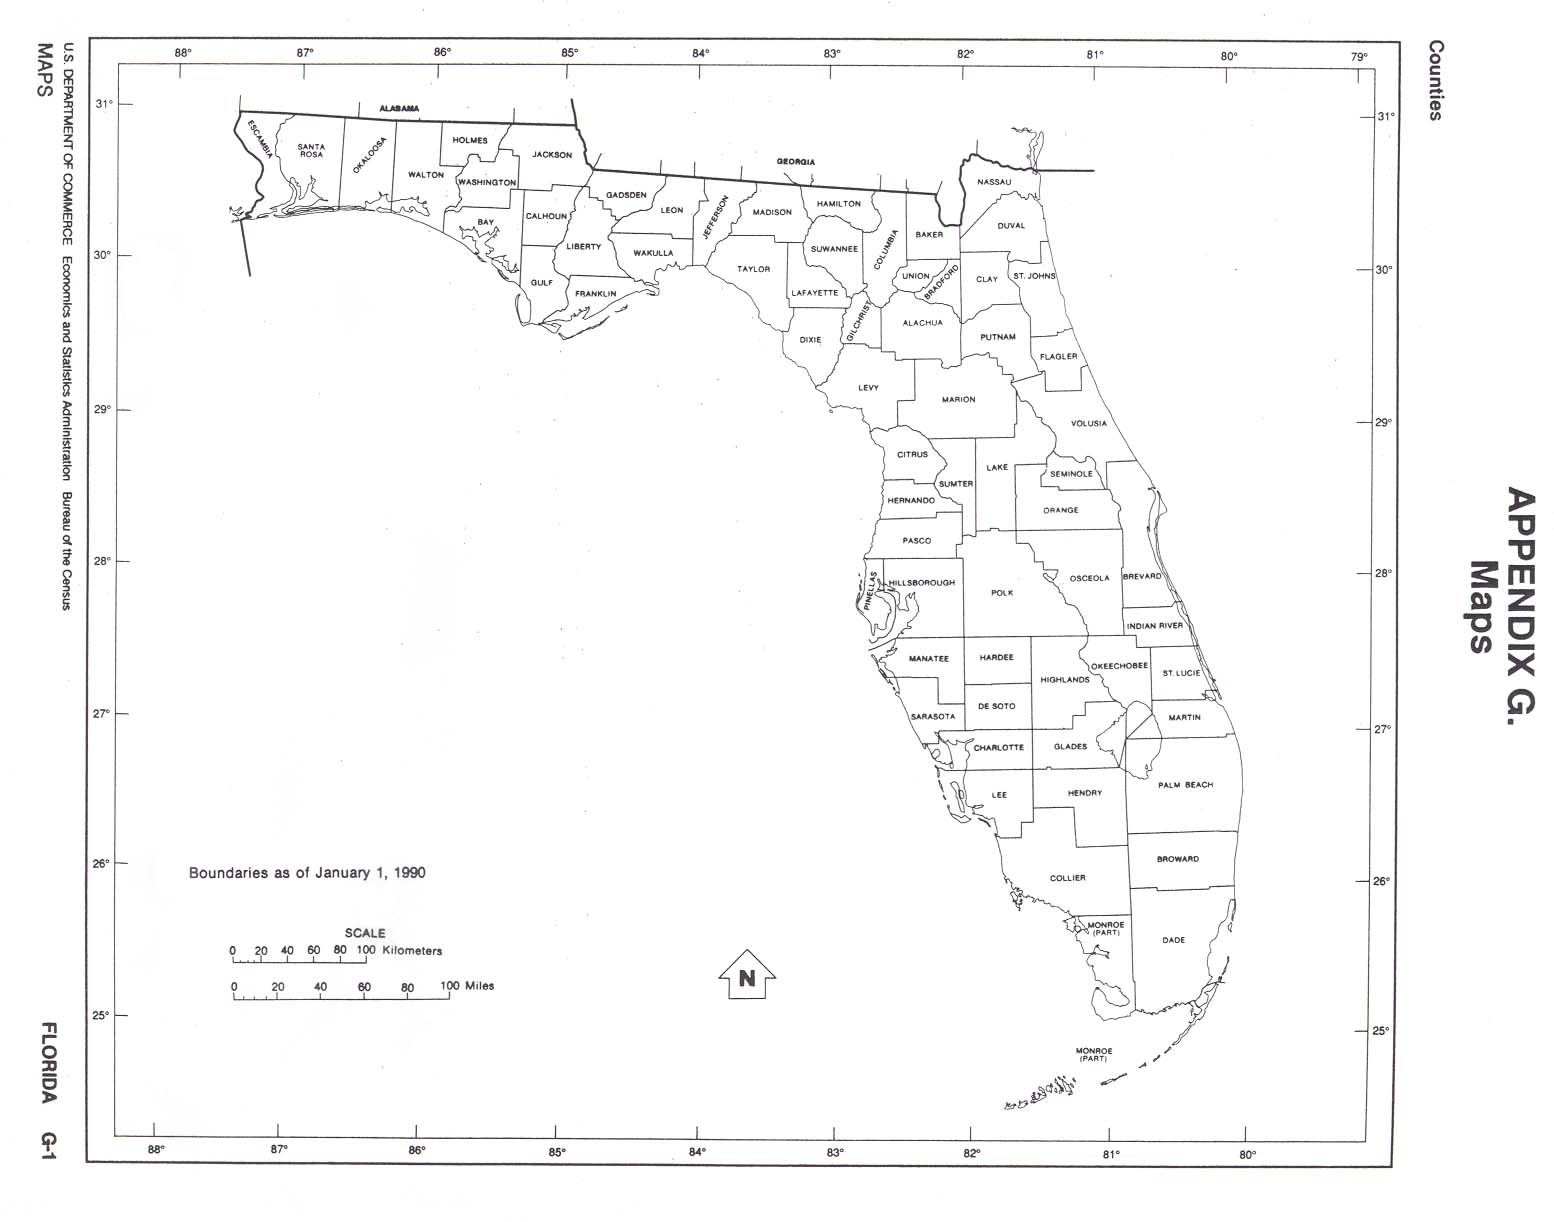 Florida Outline Maps And Map Links - Map of florida counties and cities